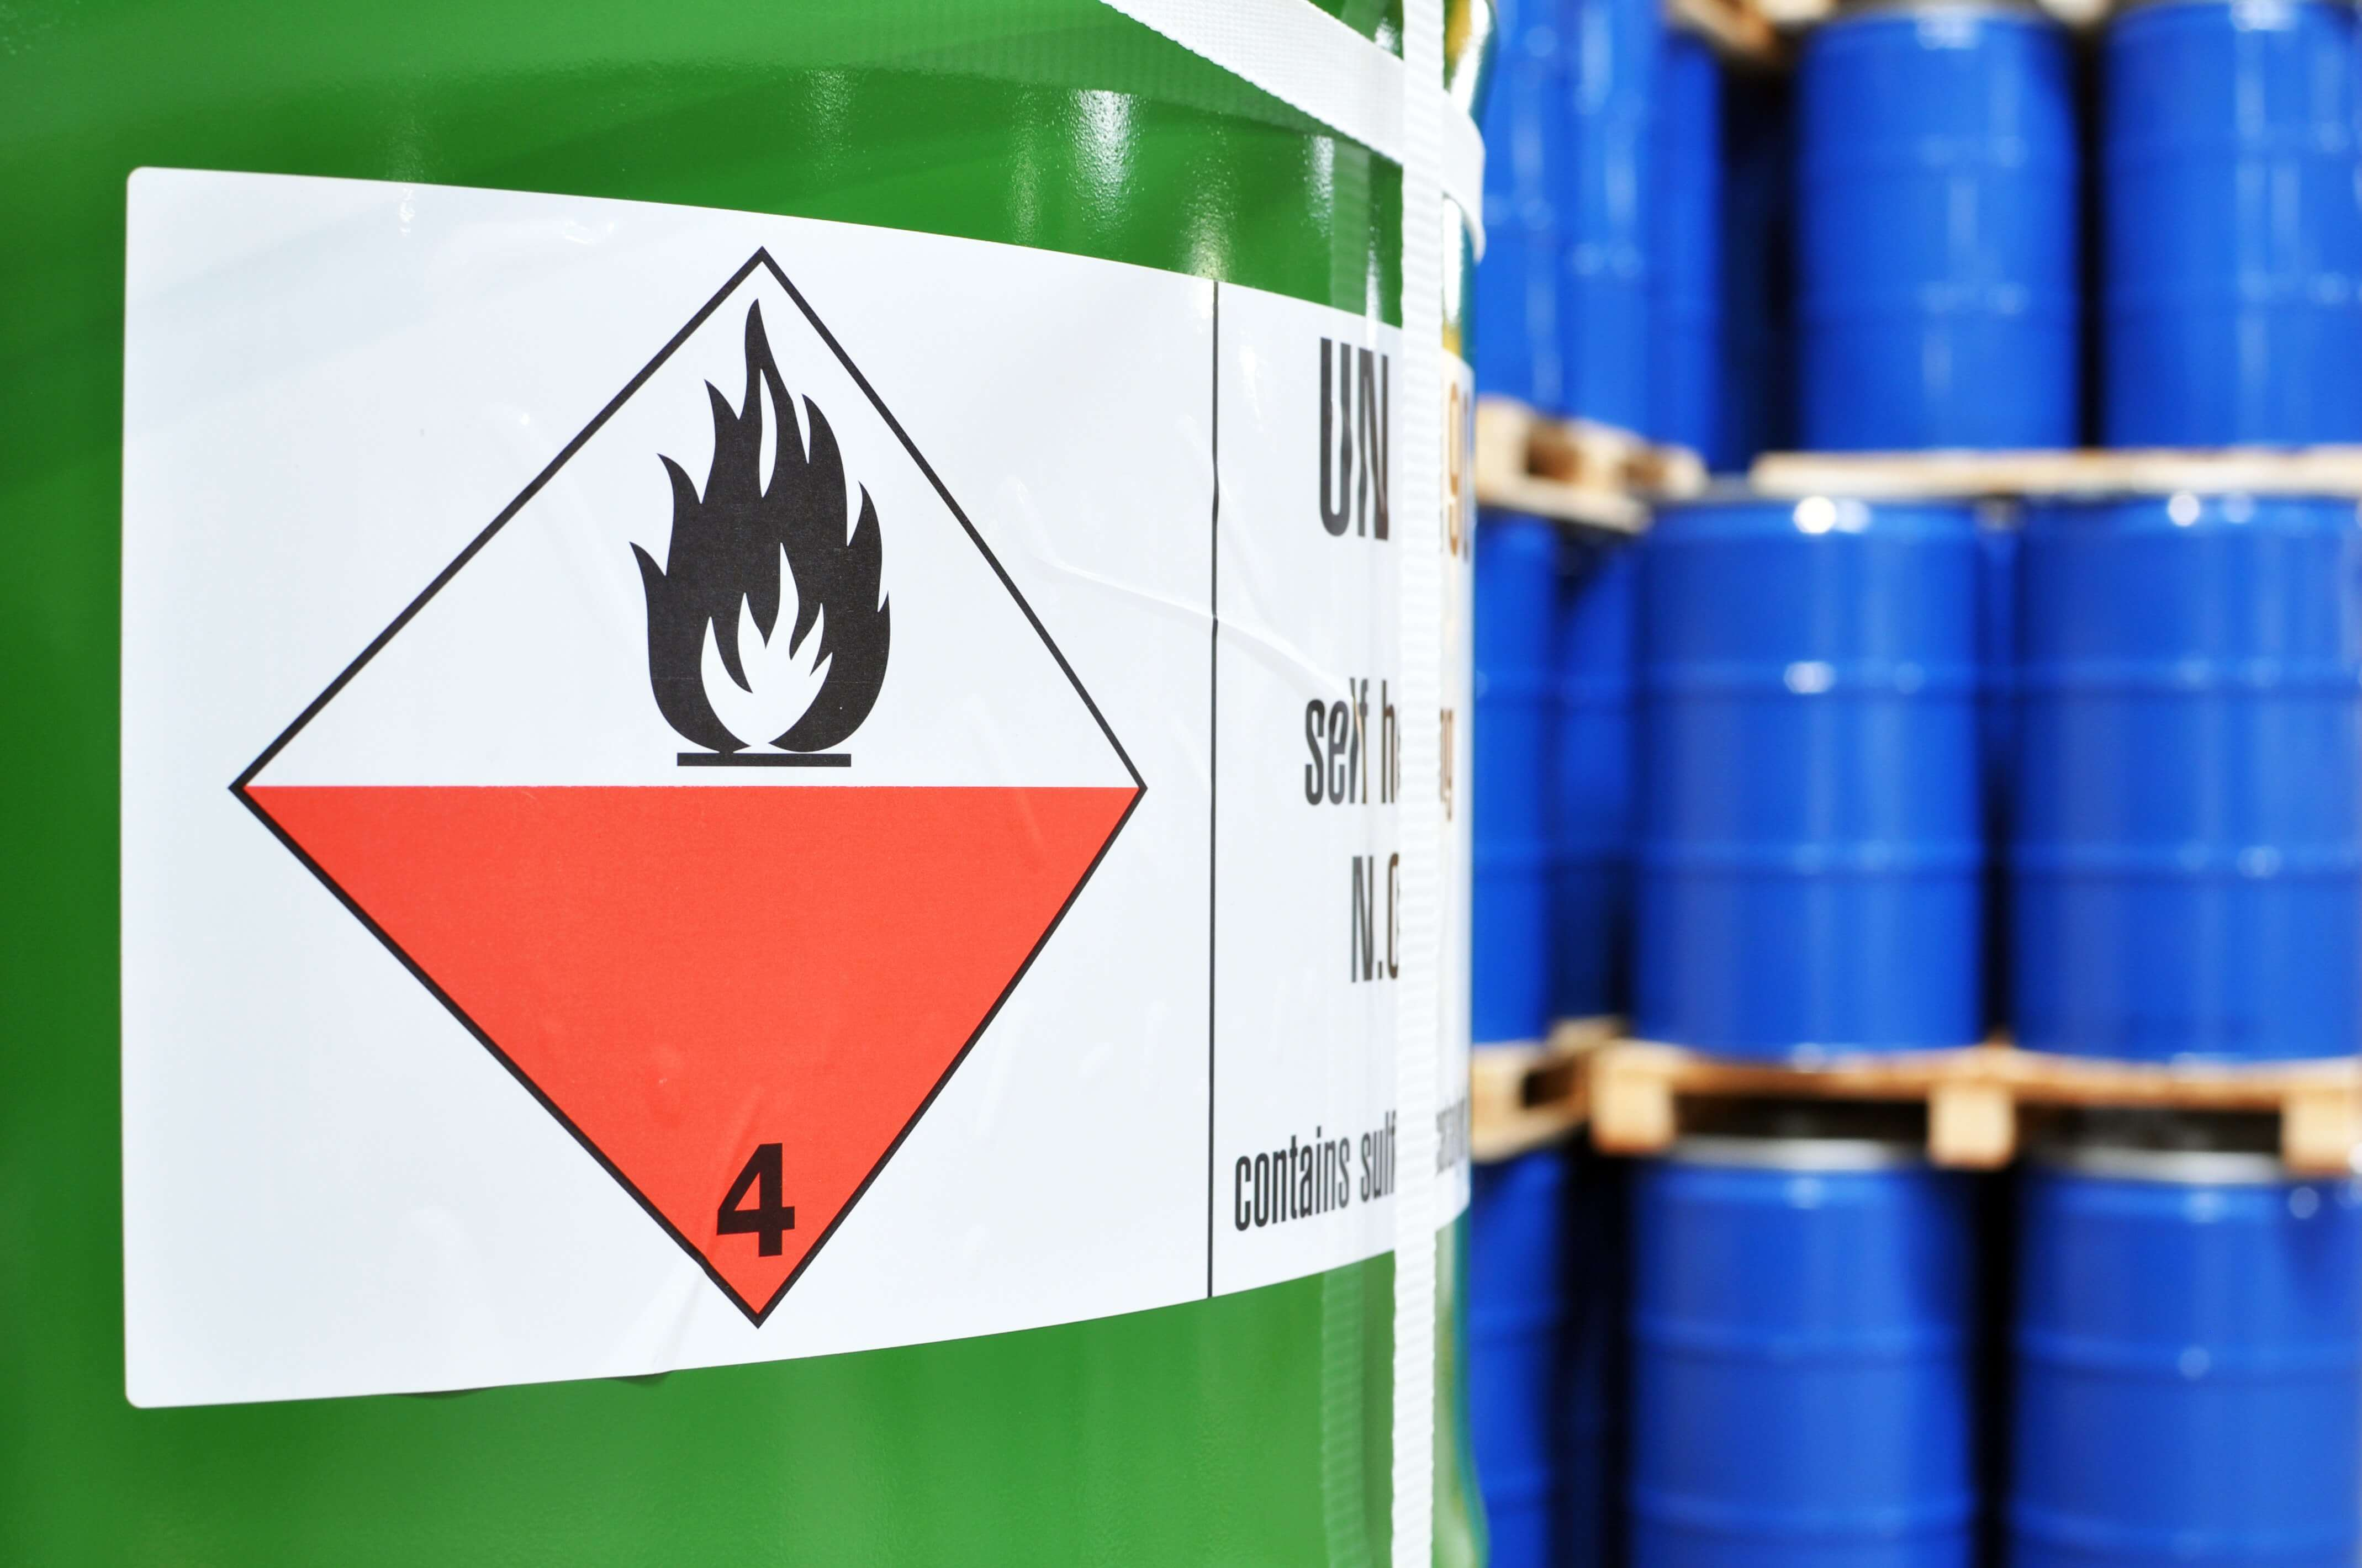 What are the risks associated with dangerous goods?